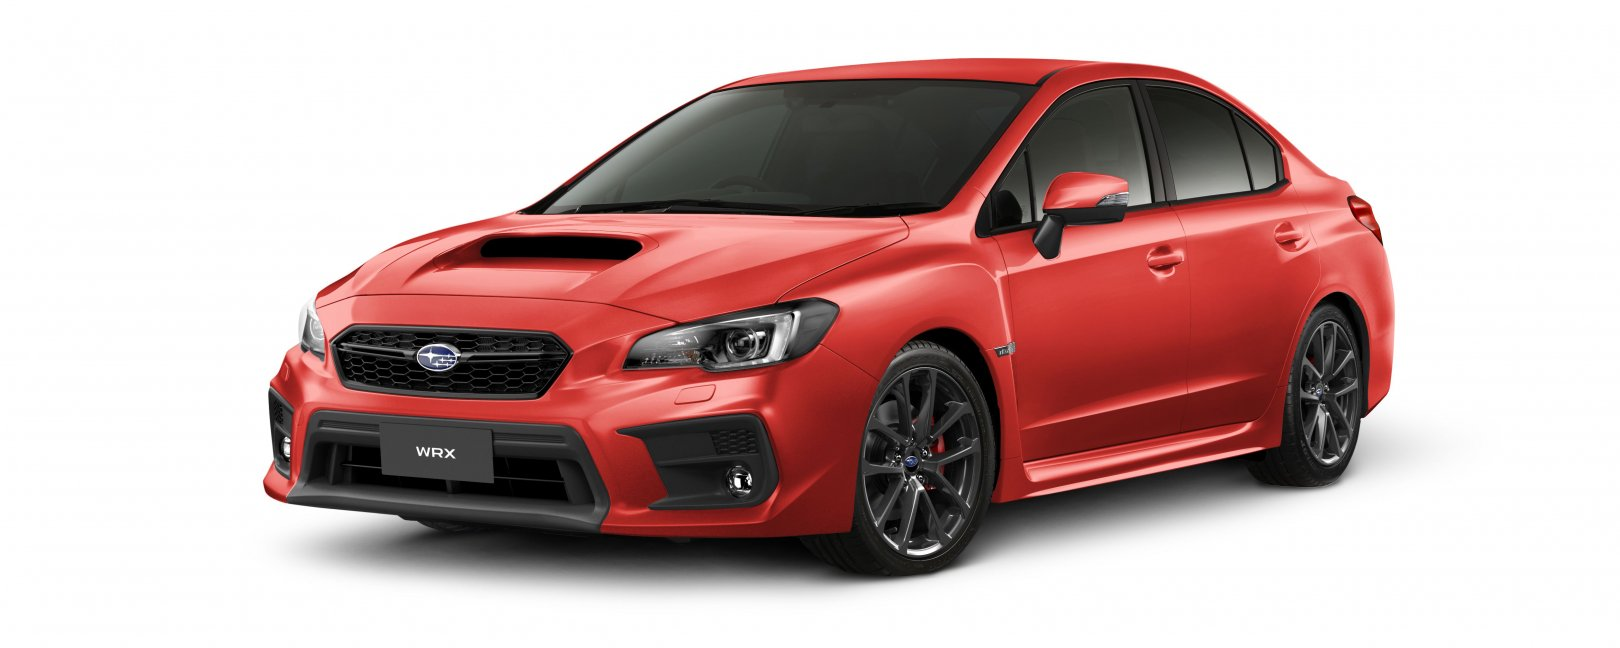 WRX Pure Red